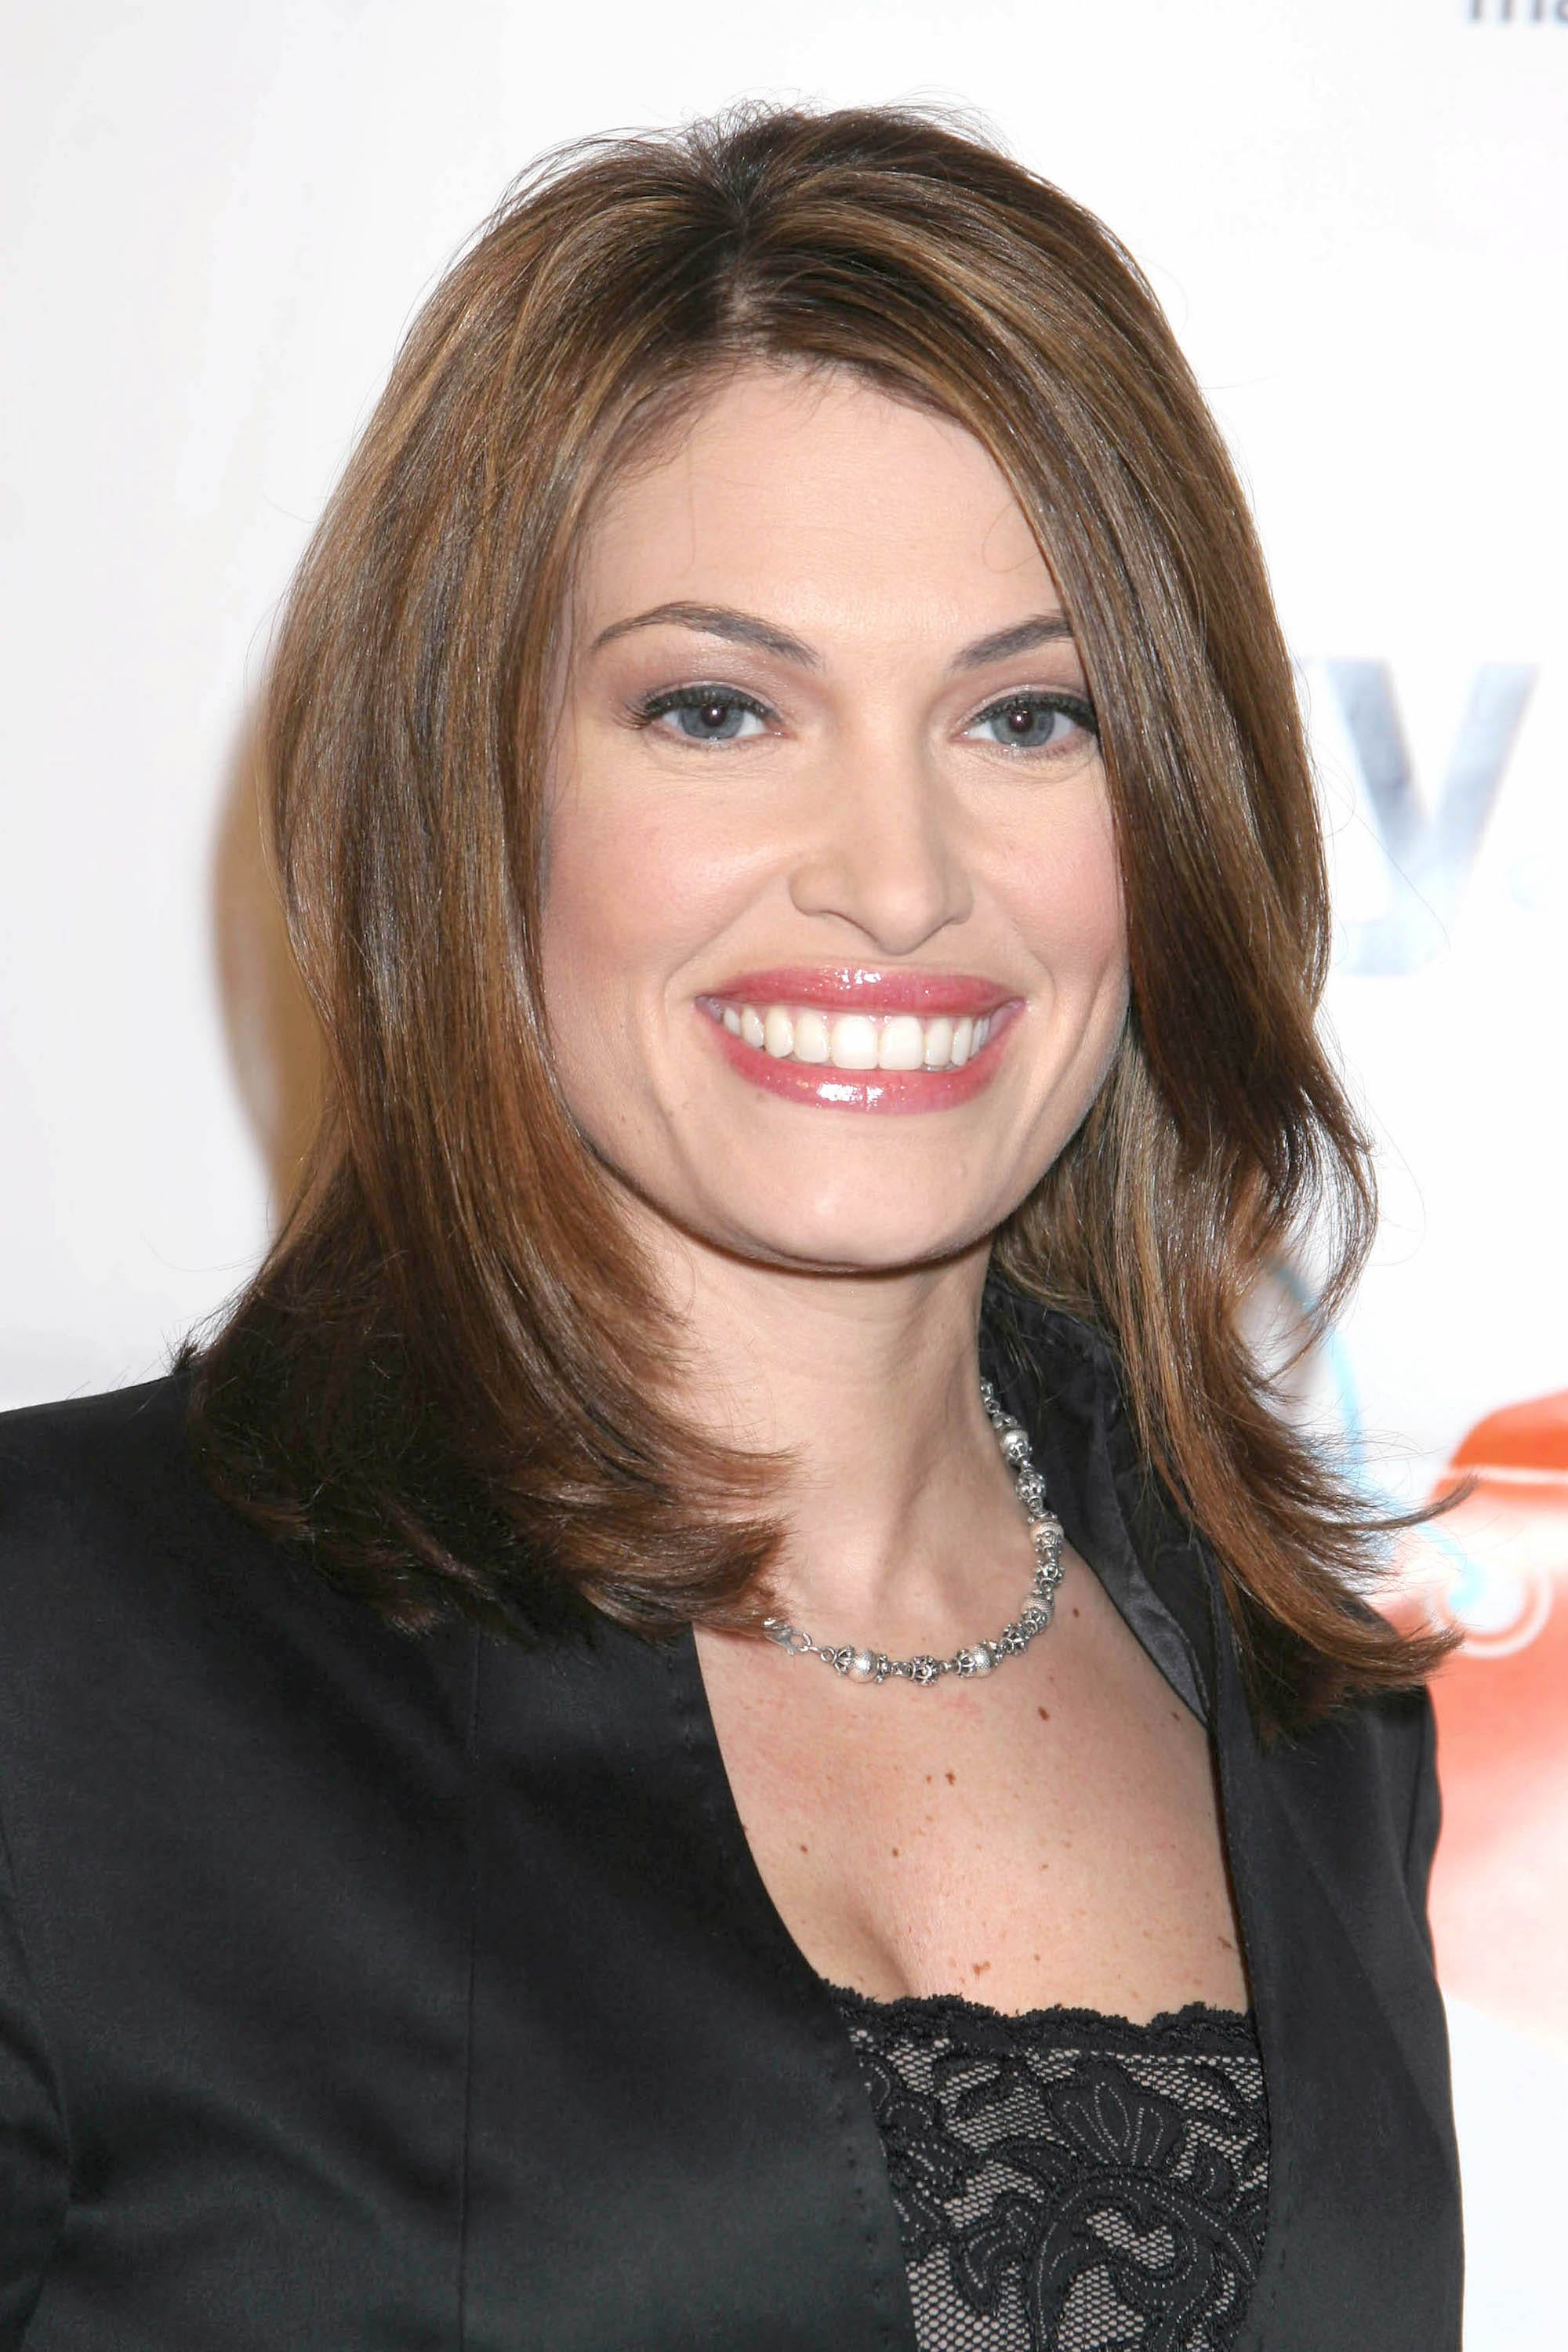 Kimberly Guilfoyle Bio Of Former Fox News Host Dating